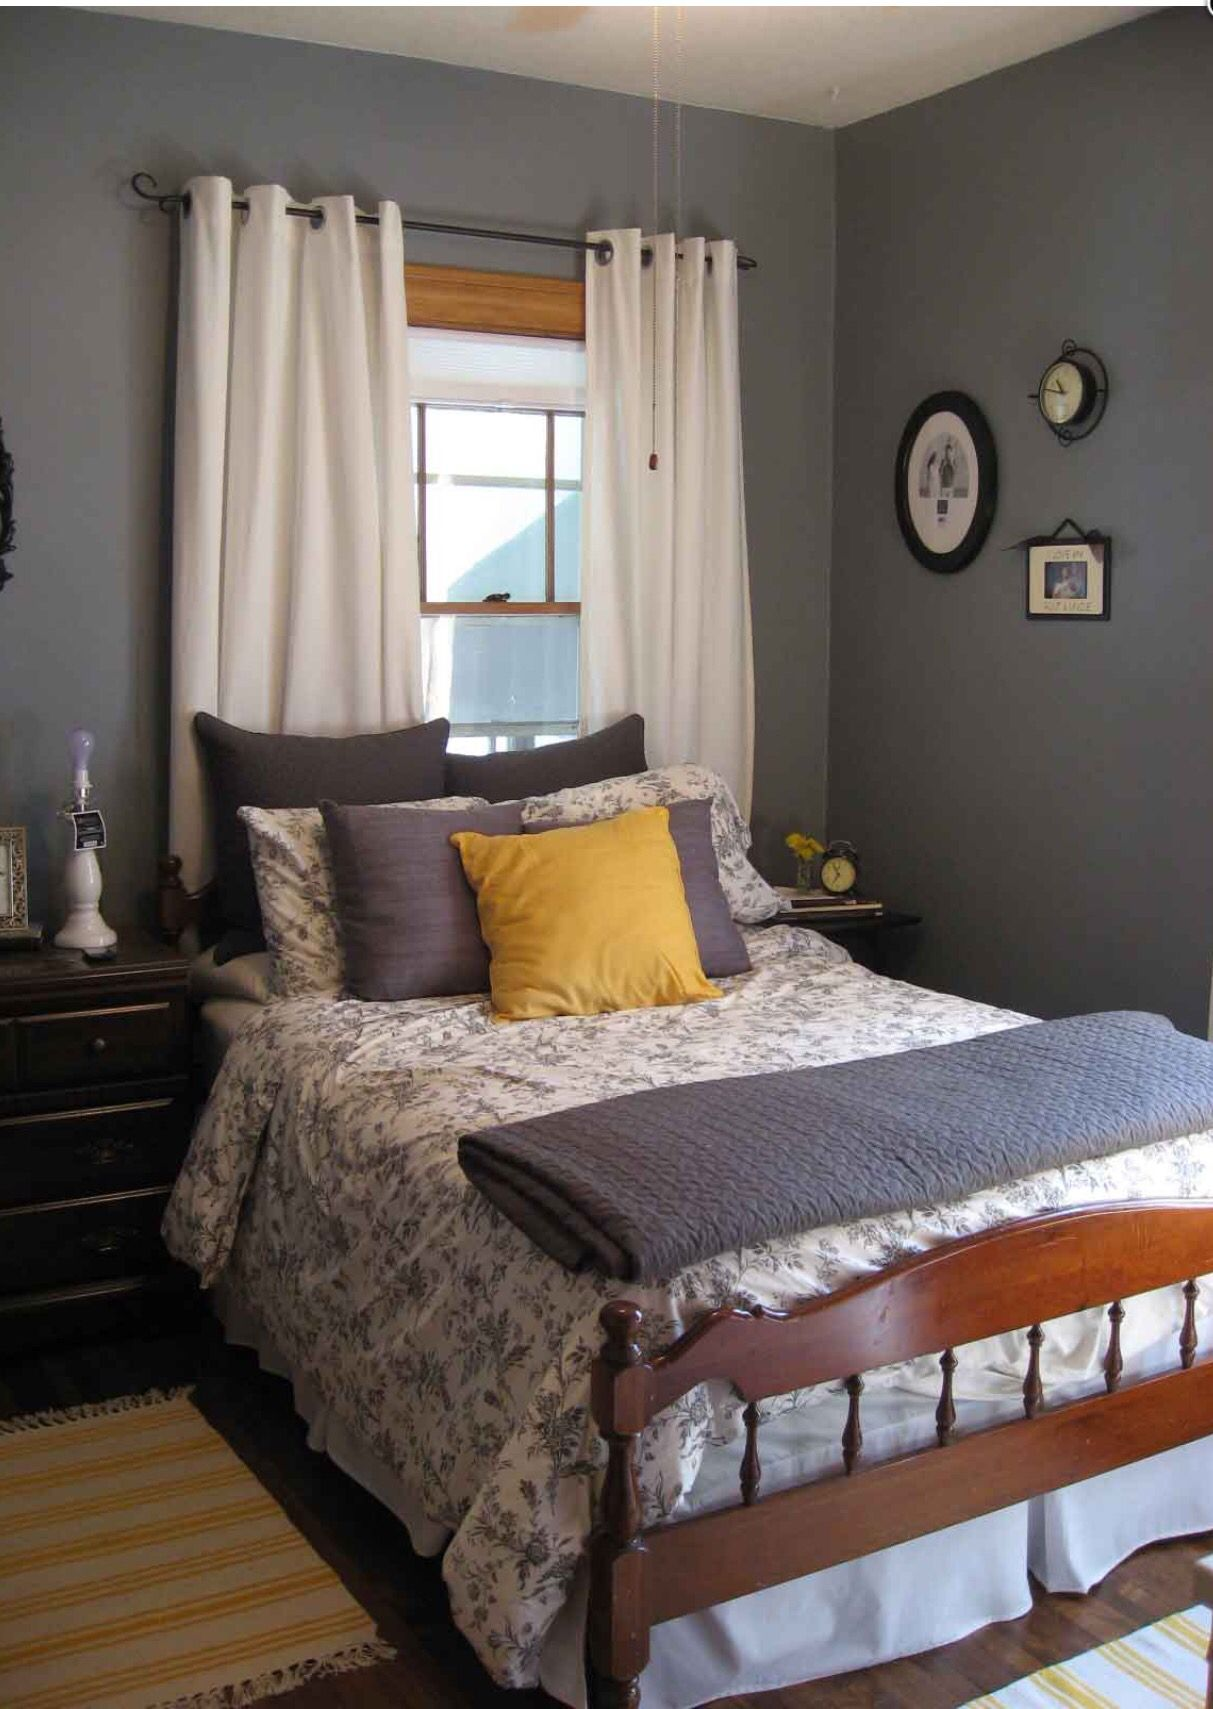 I ADORE this grey, purple, and yellow color scheme with